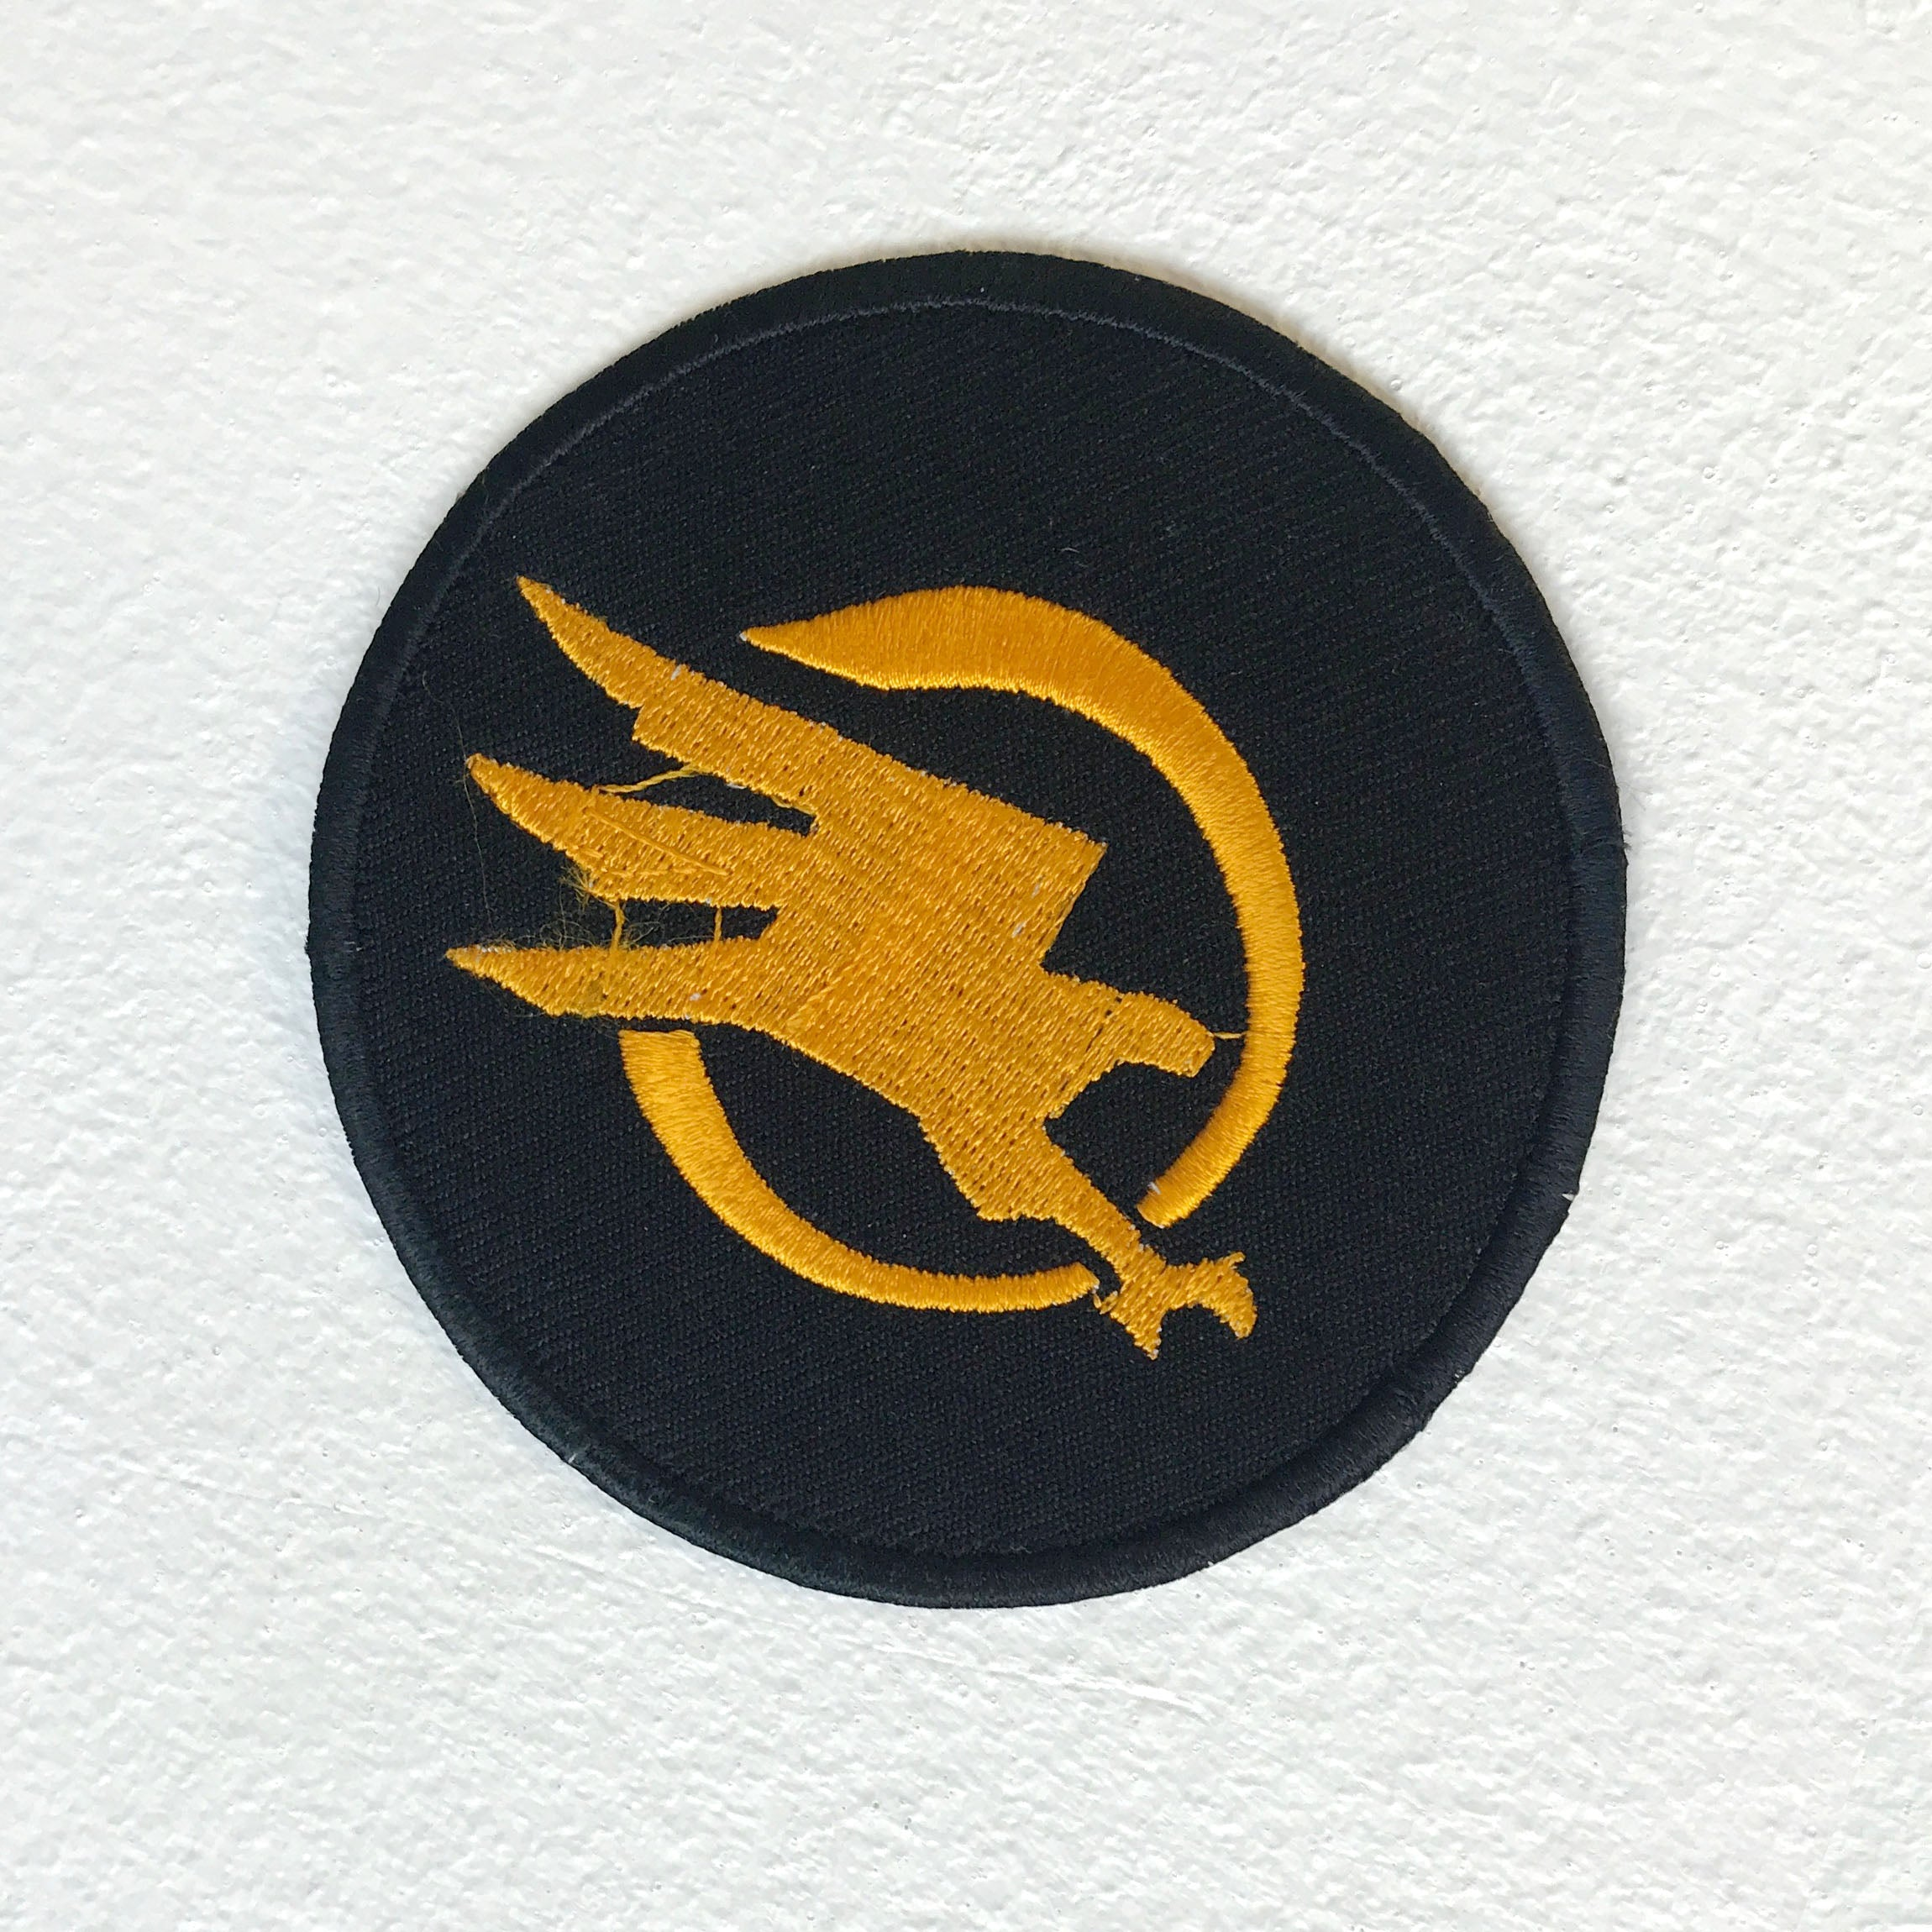 Command and Conquer Eagle Badge logo Iron Sew on Embroidered Patch